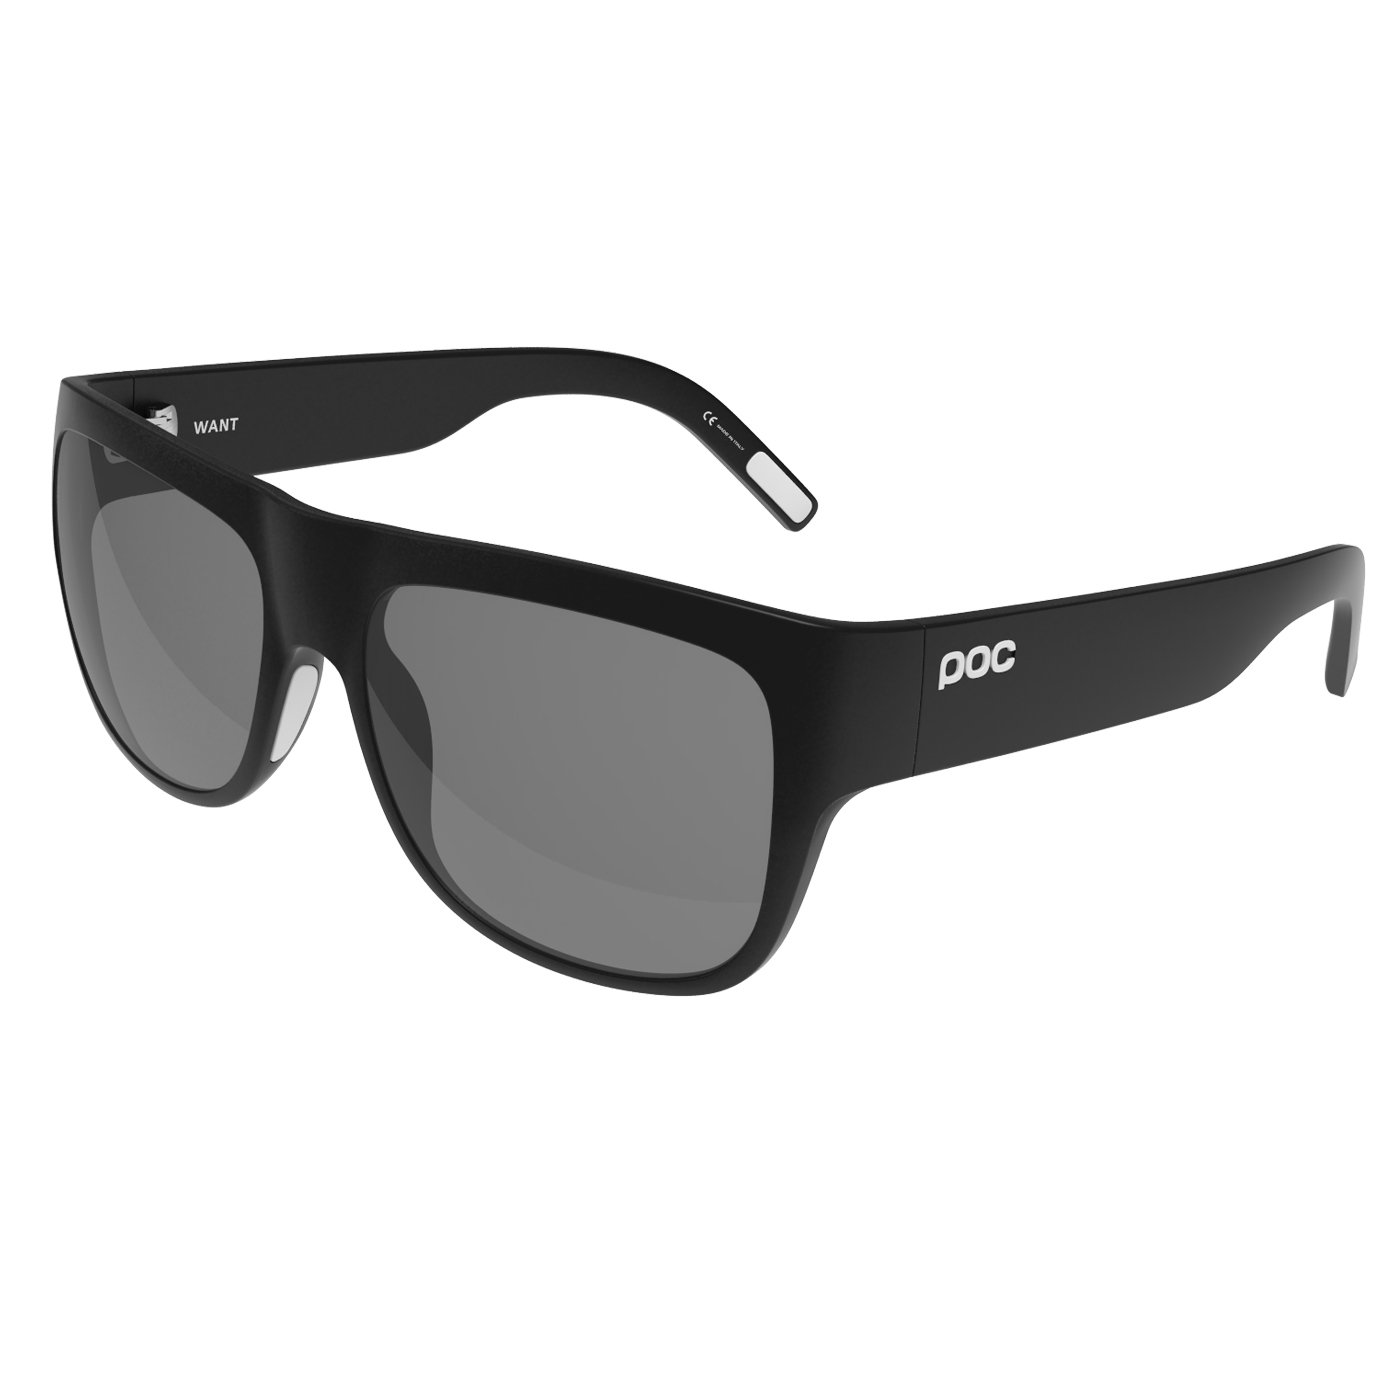 POC DO Low - Gafas de esquí Unisex, Color Negro